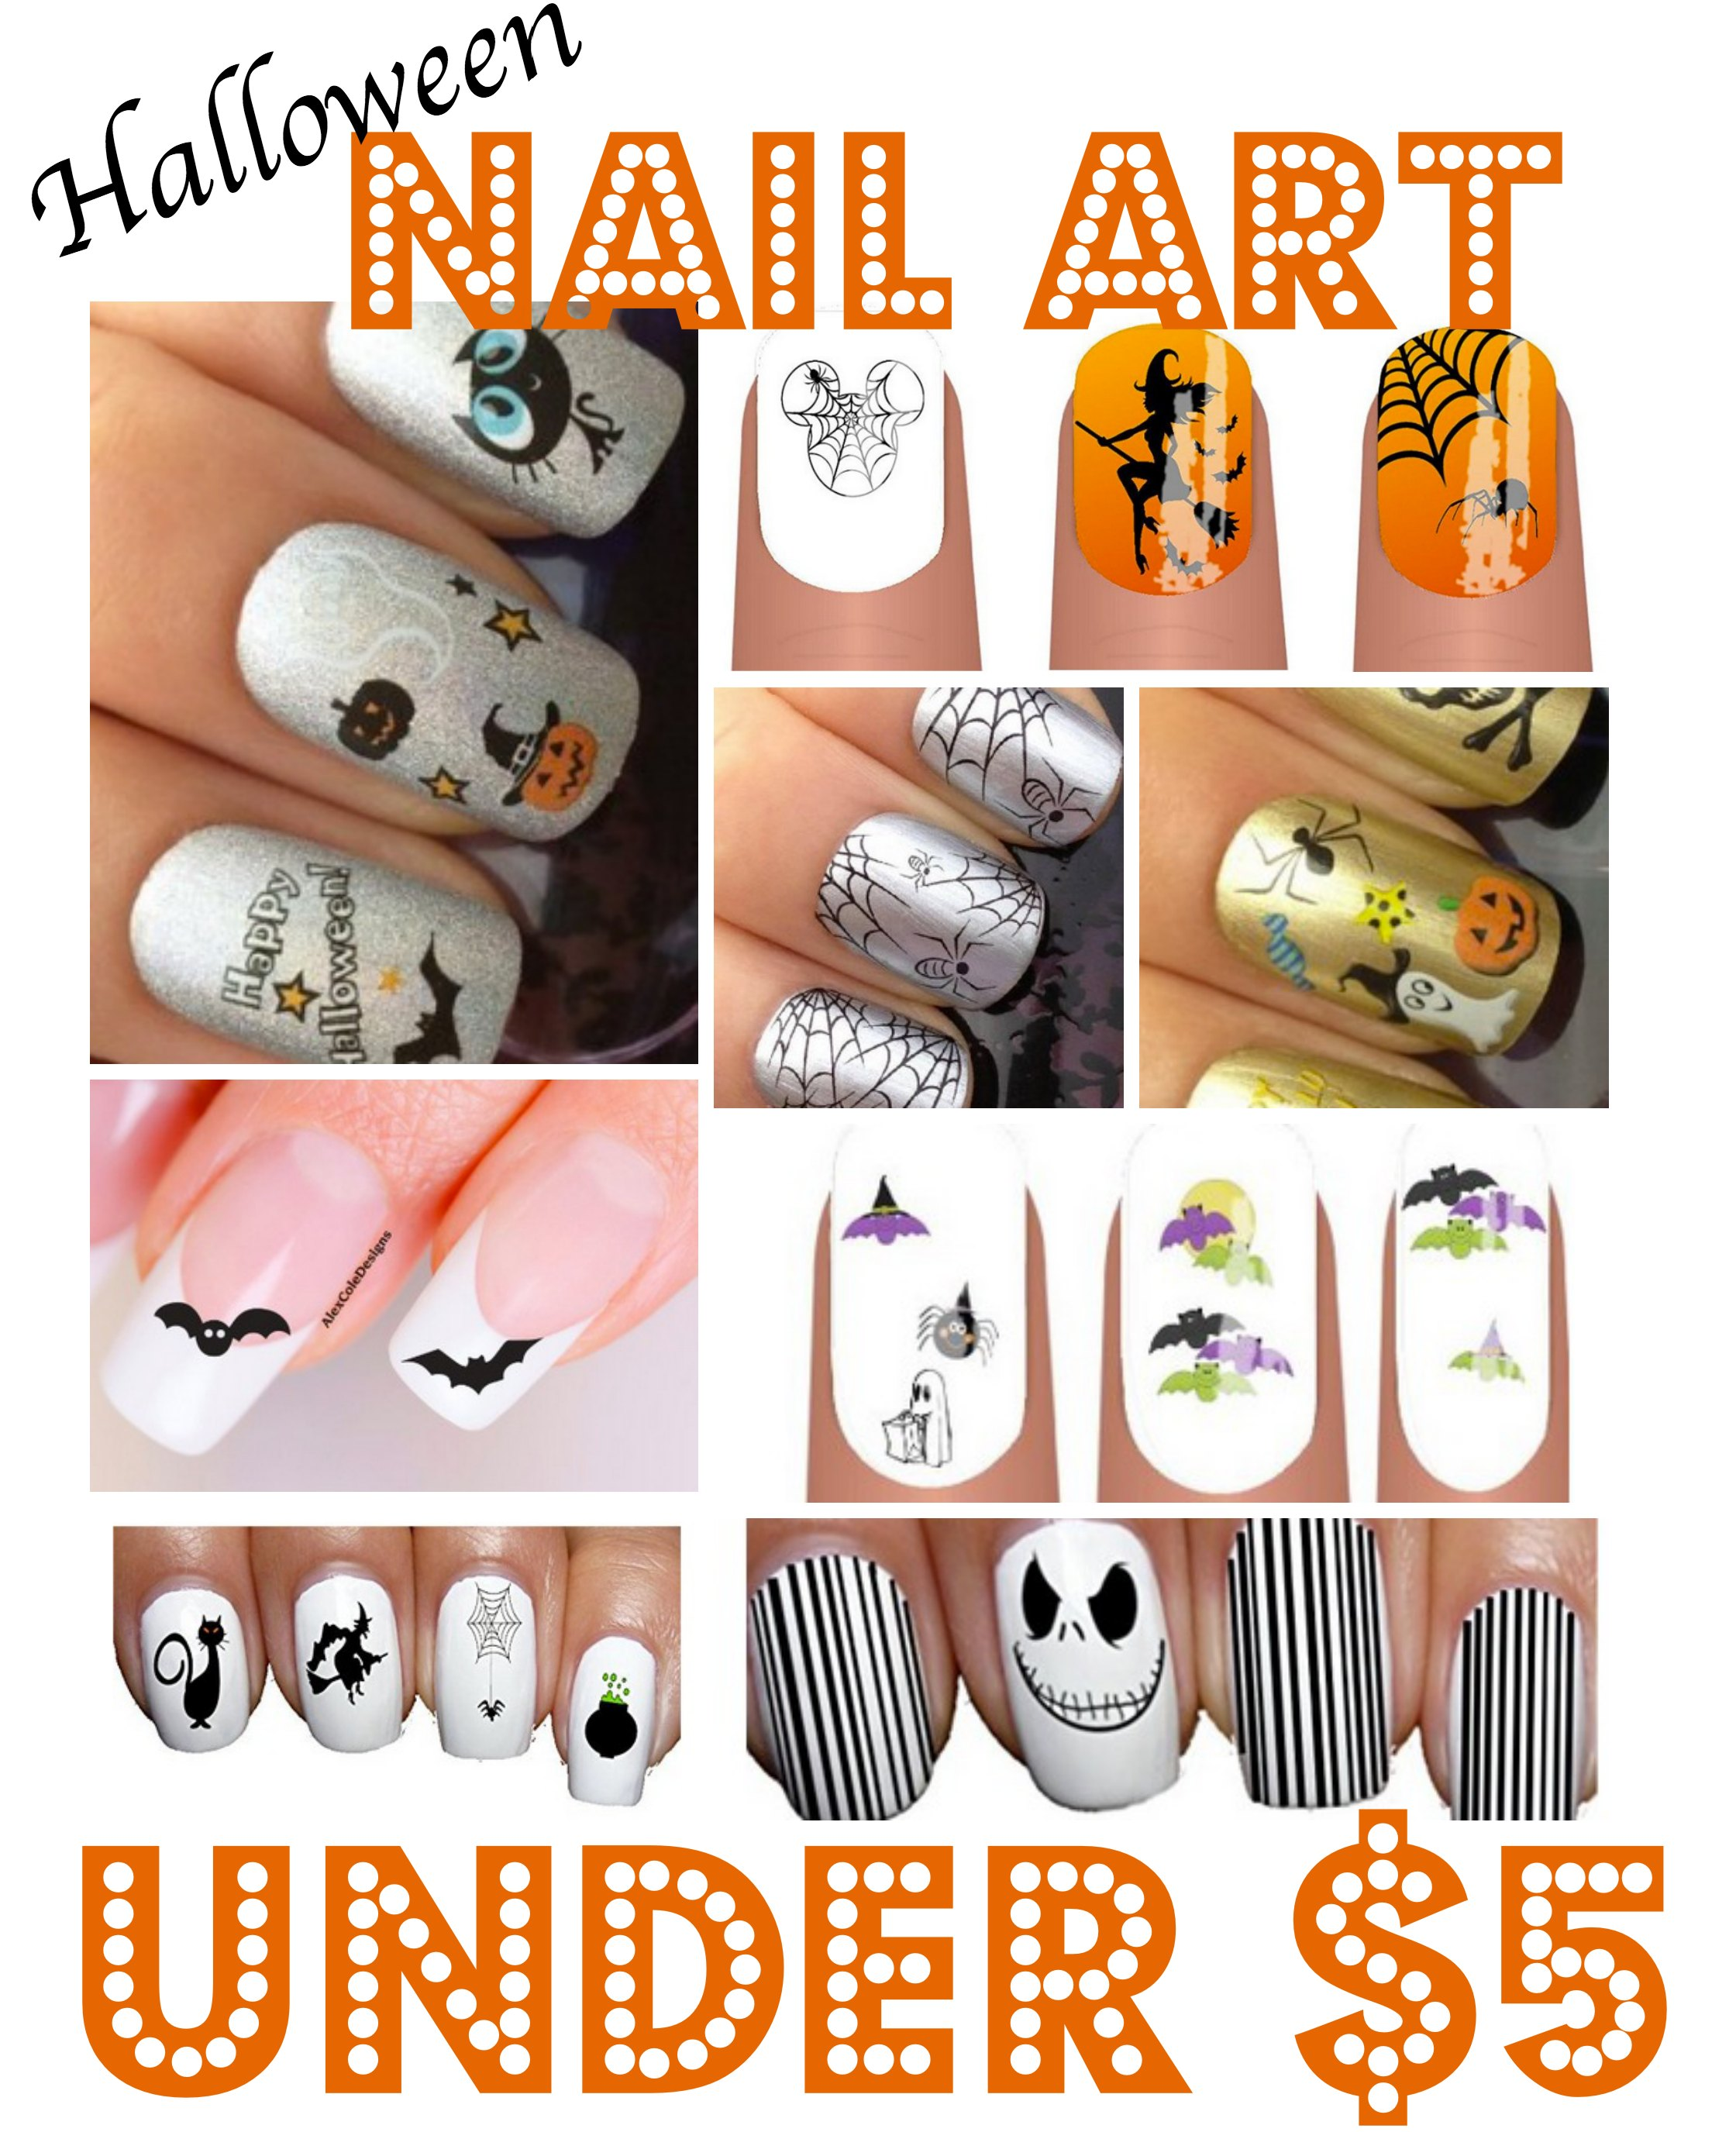 Top 10 Halloween Nail Decals Under $5 Shipped